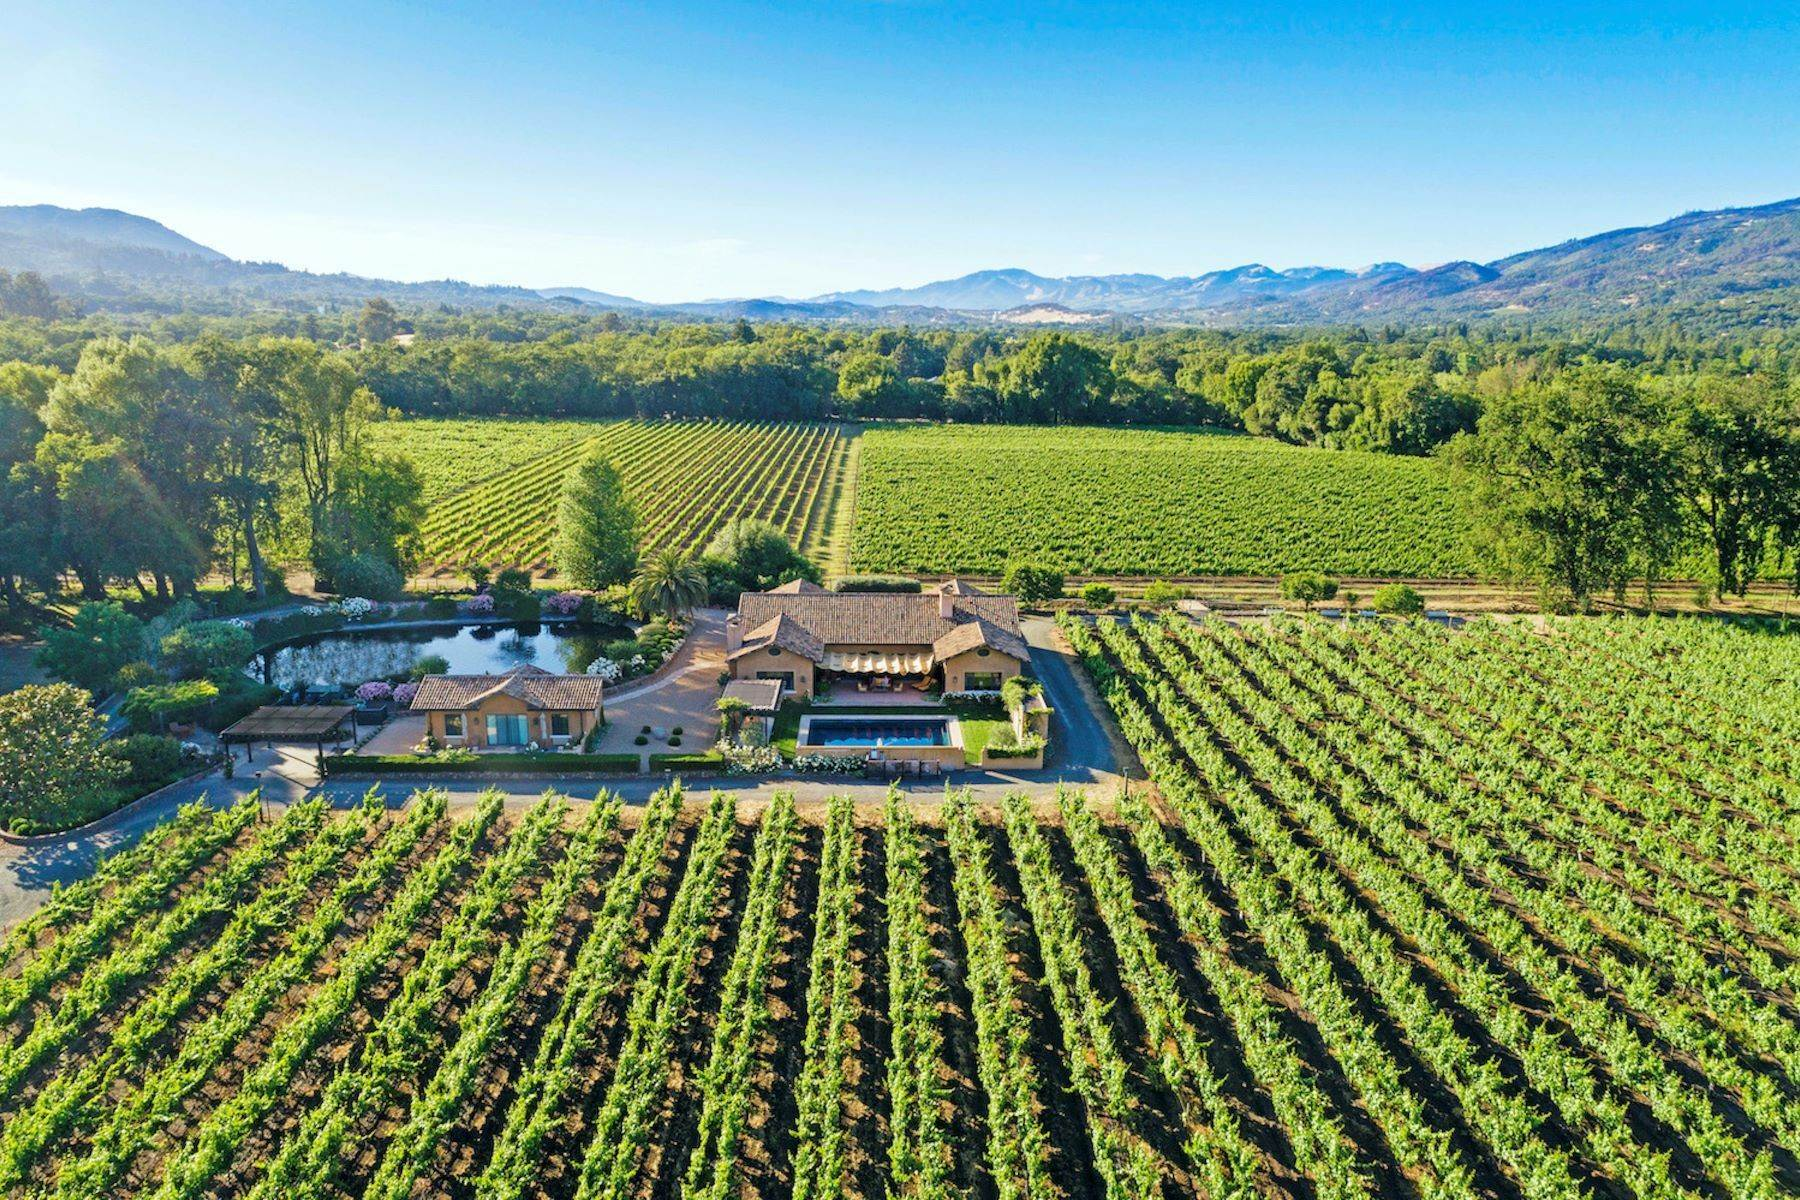 Single Family Homes for Sale at Frogmore Vineyard Estate 938 Country Club Ln Sonoma, California 95476 United States